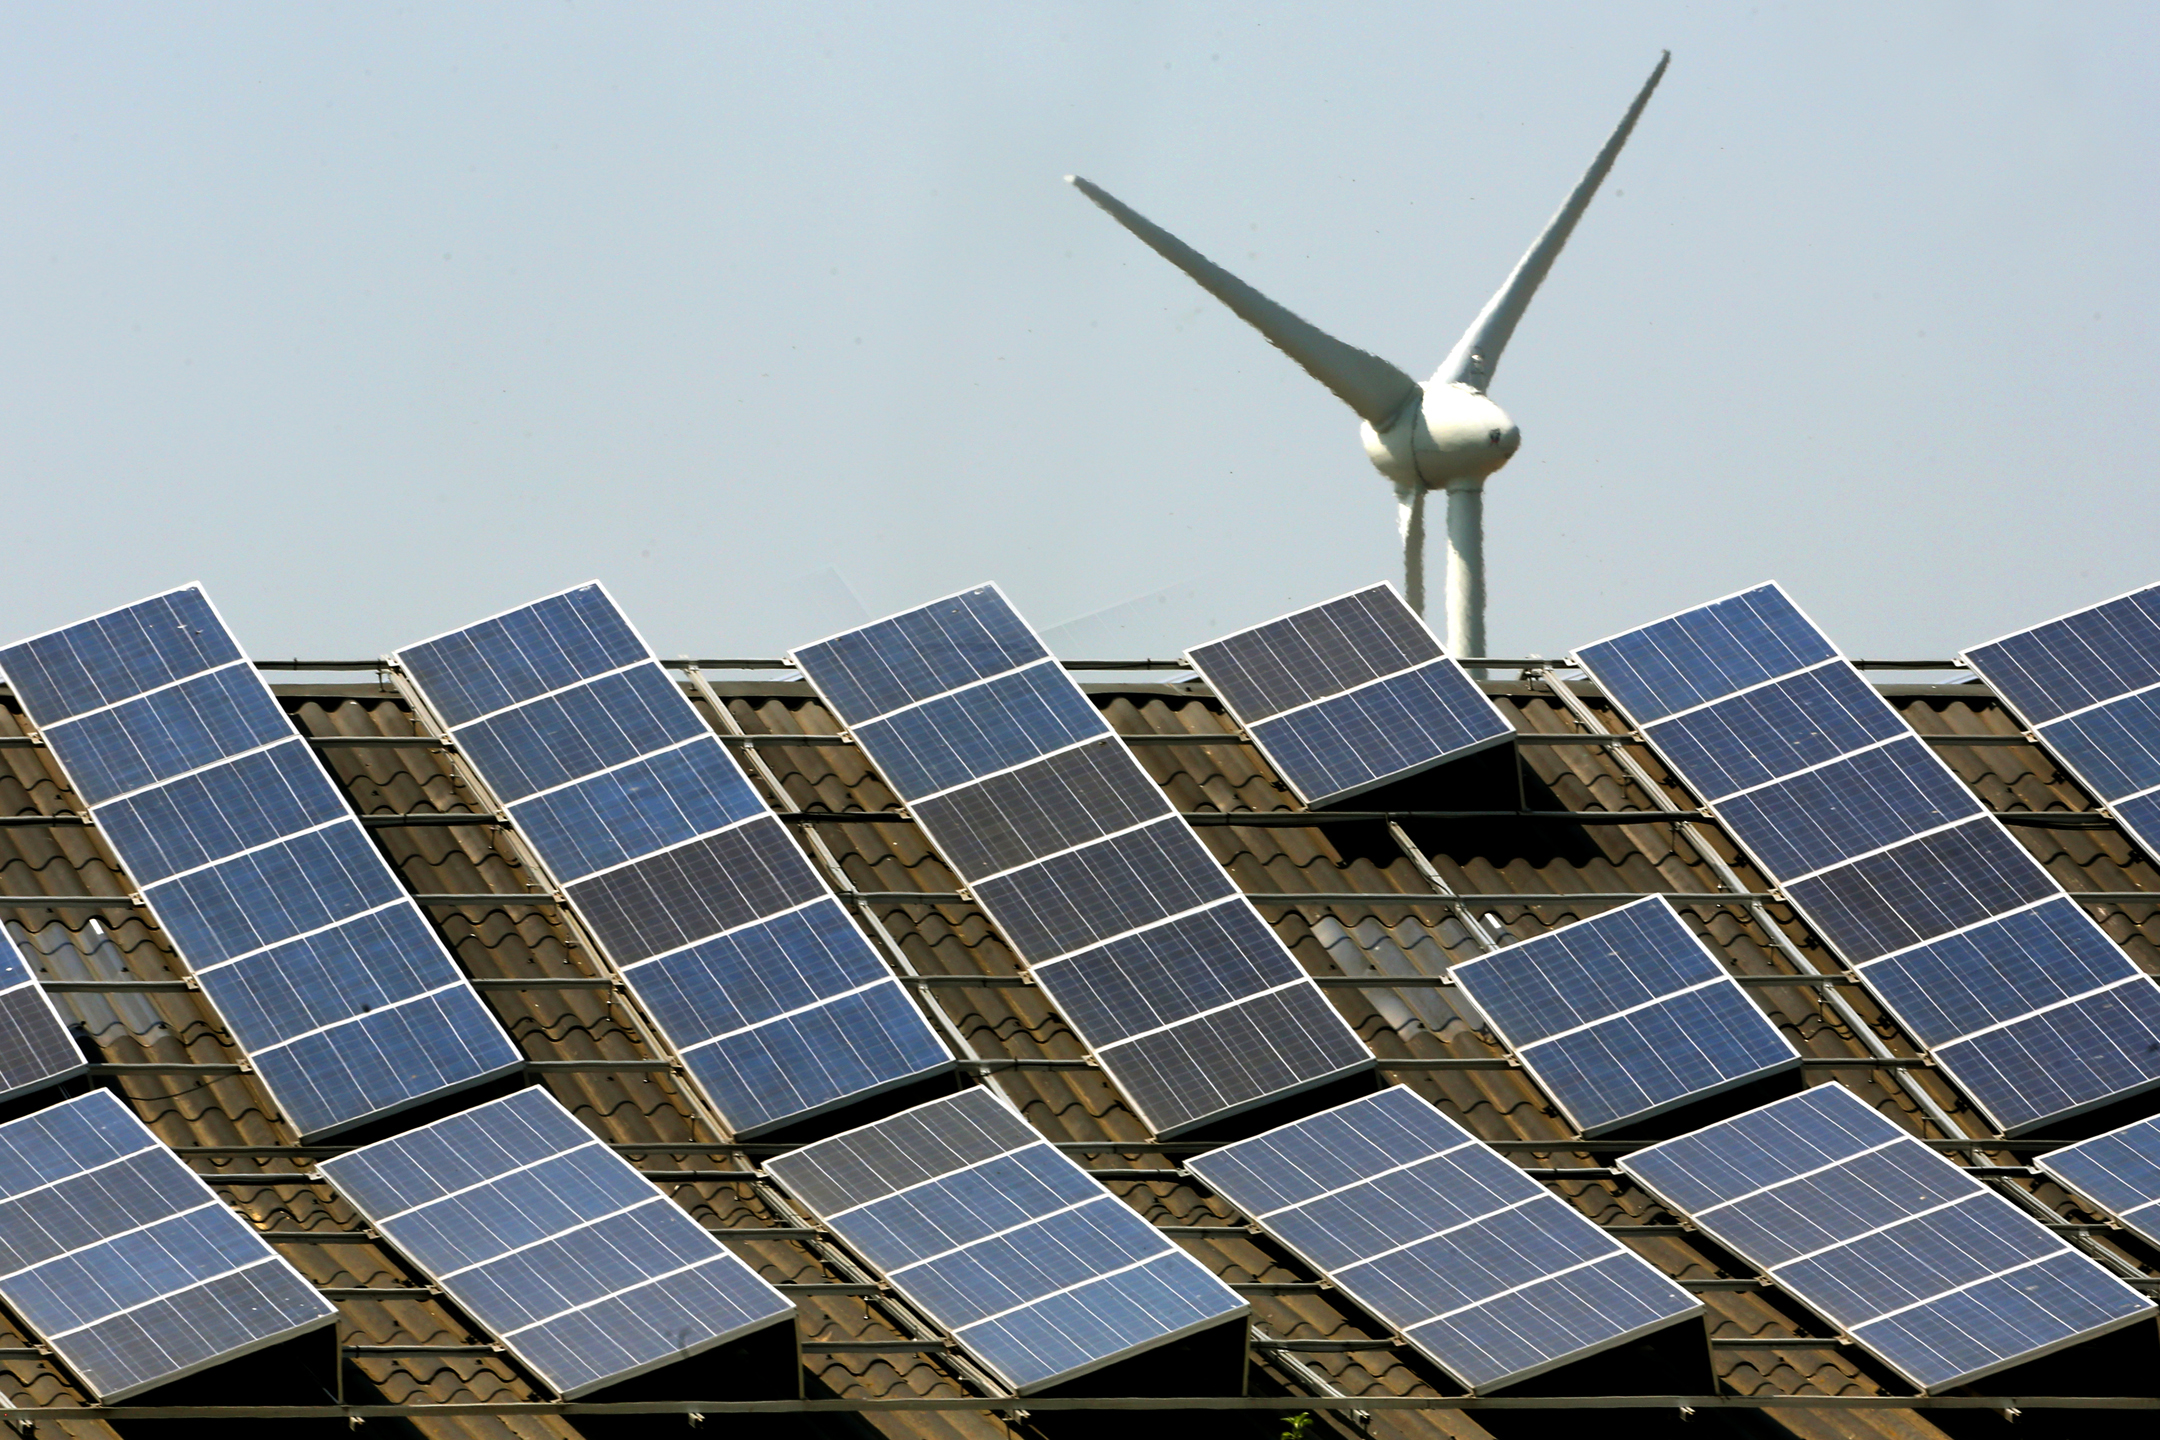 Tendering Process For Photovoltaics And Wind Power With 1